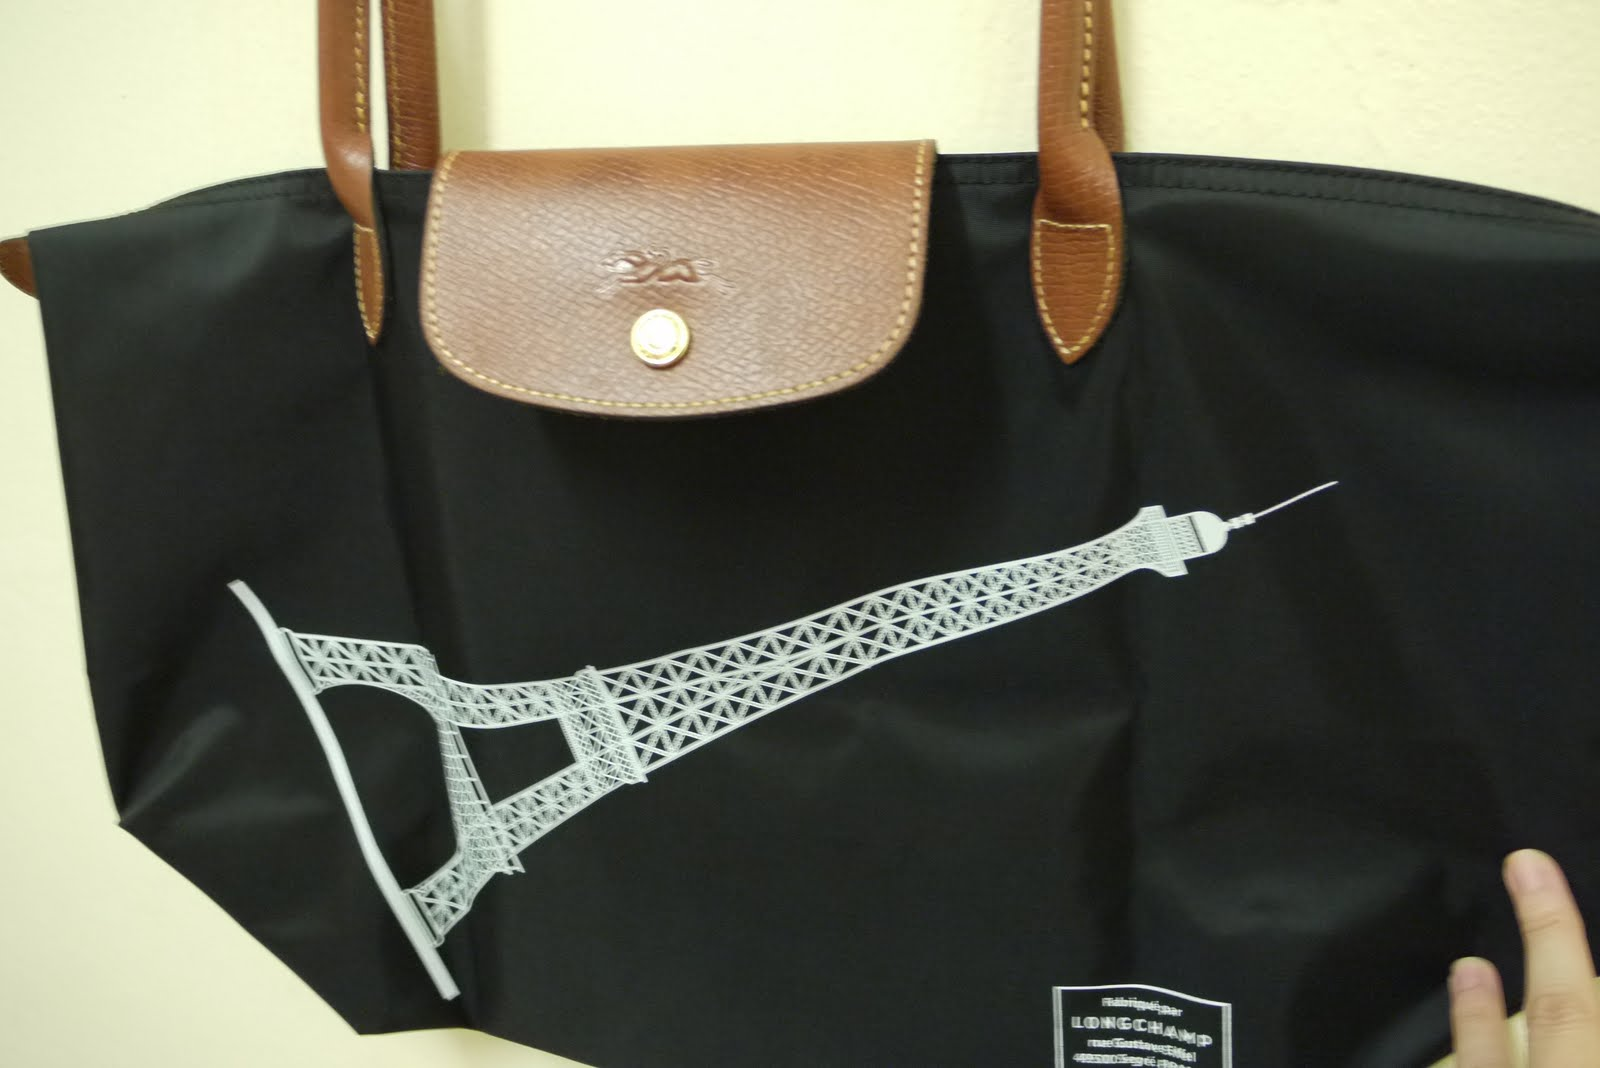 Longchamp Le Pliage Eiffel Tower Tote